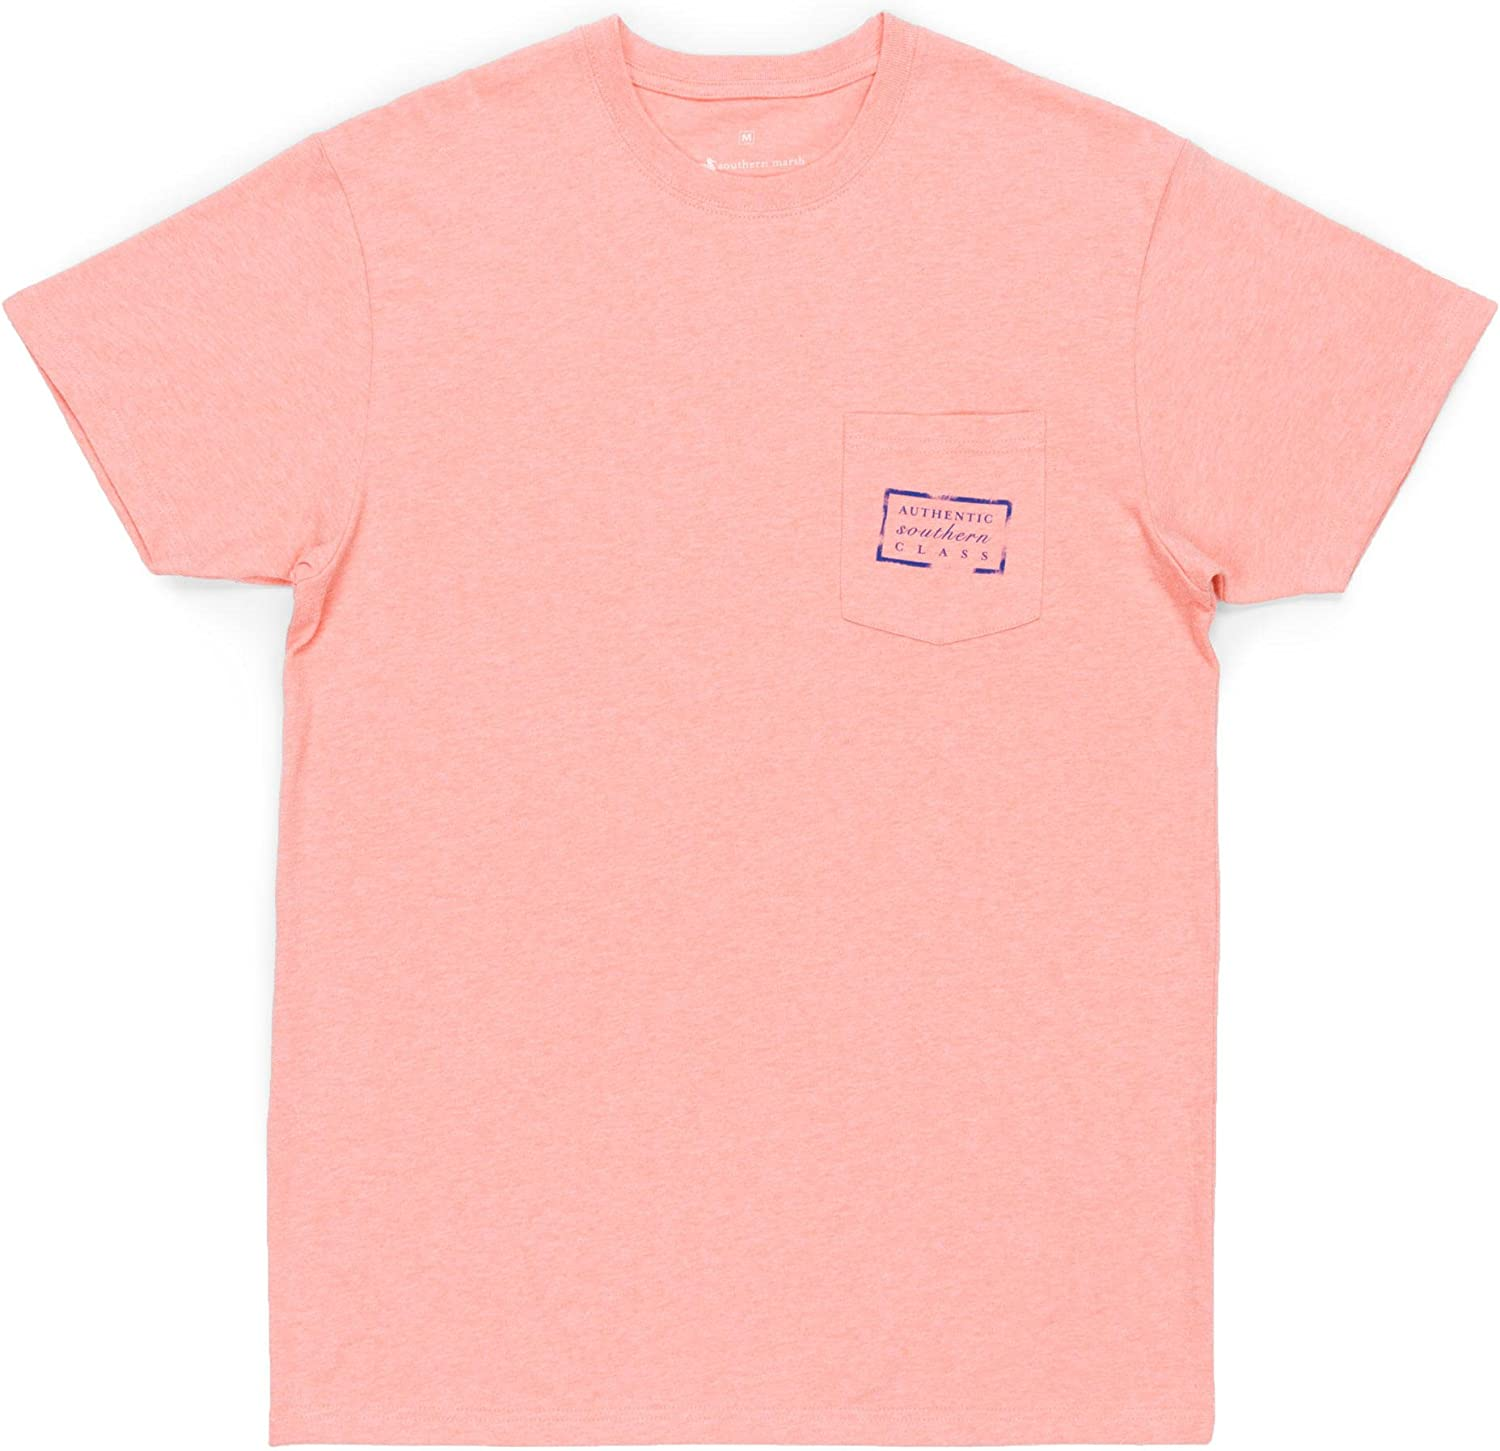 Direct sale of manufacturer Authentic Vibrant Tee - Challenge the lowest price of Japan Heathered